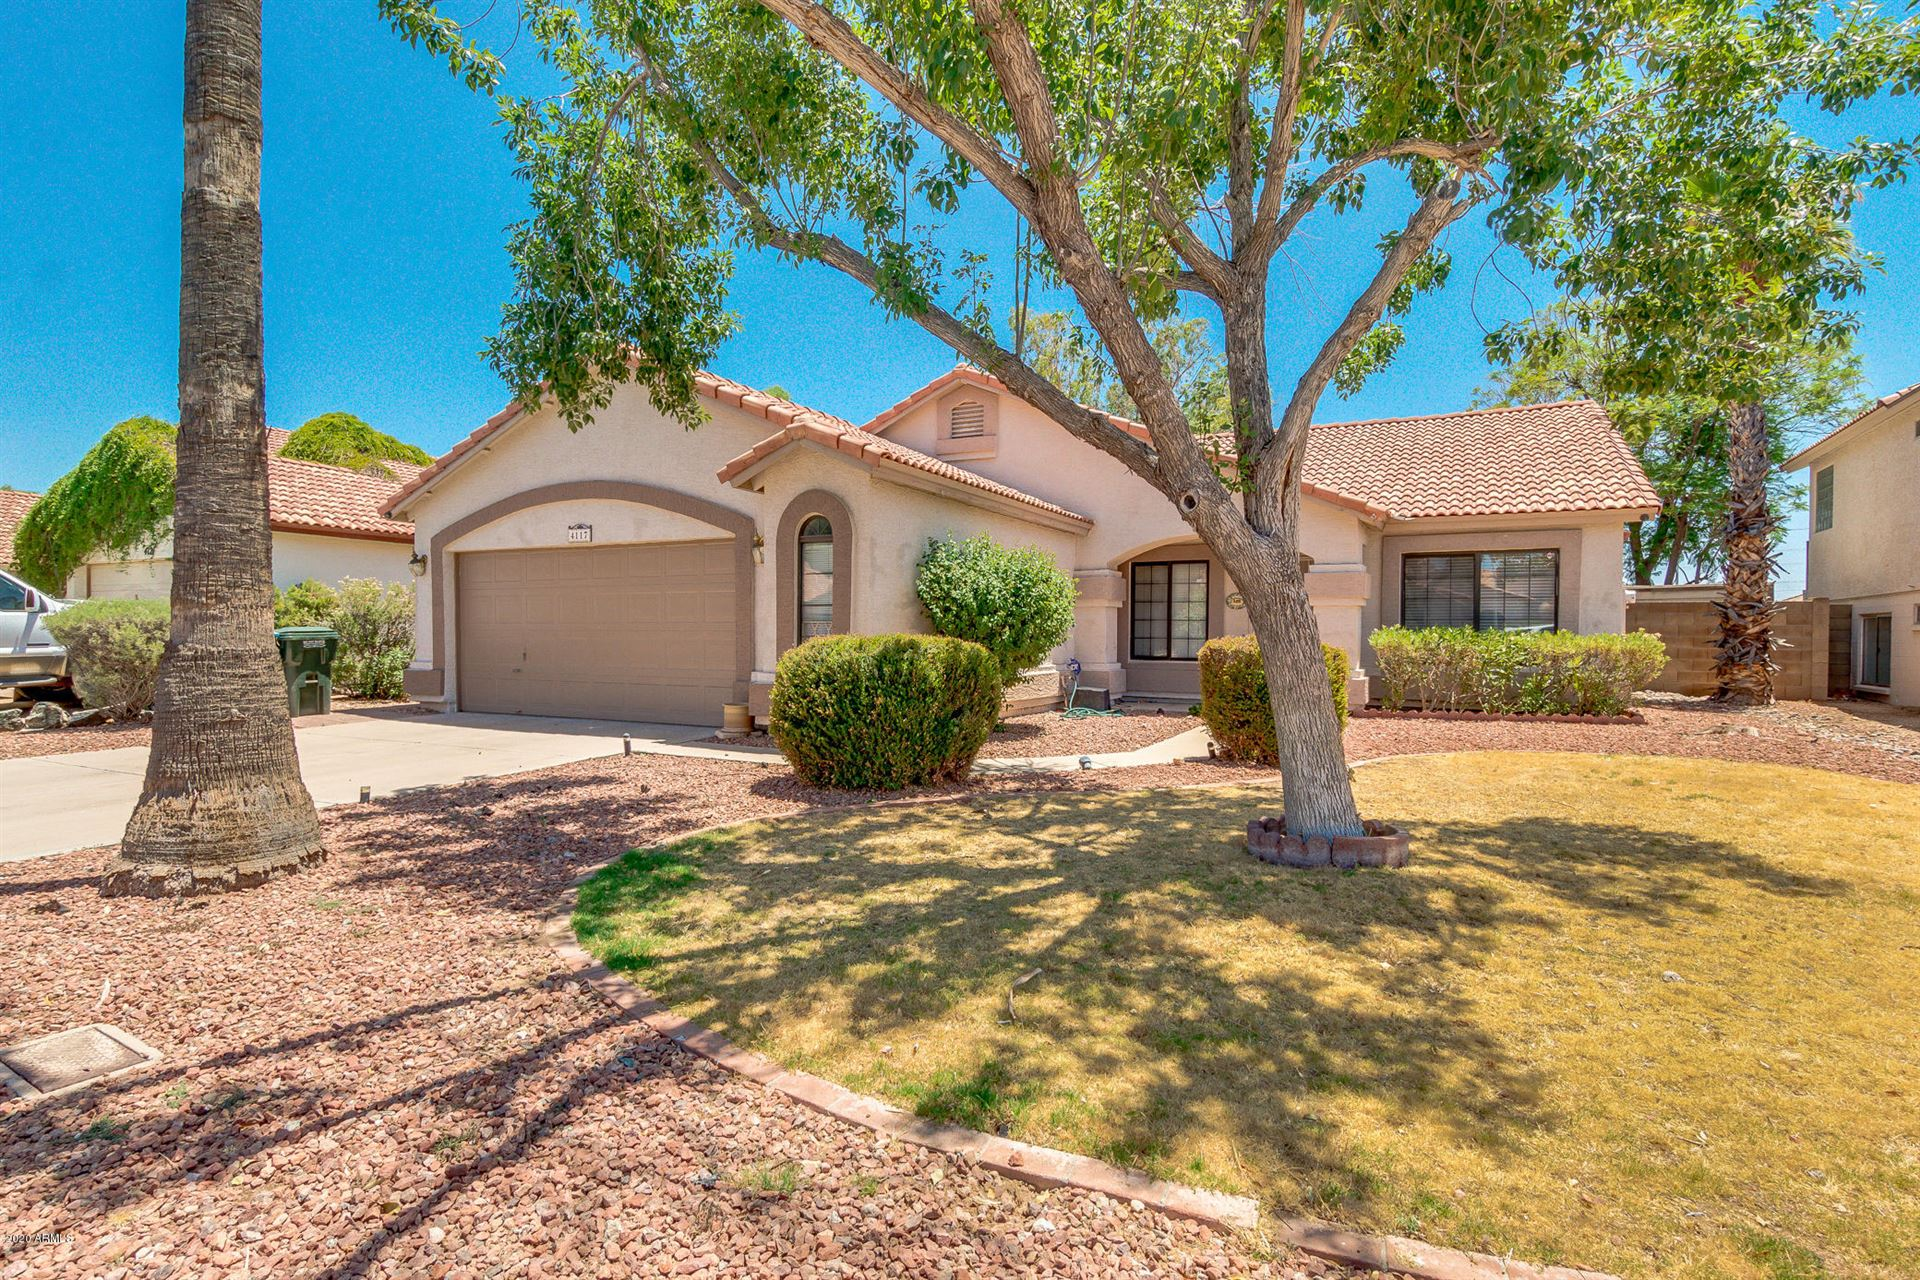 Property Image Of 4117 E Liberty Lane In Phoenix, Az